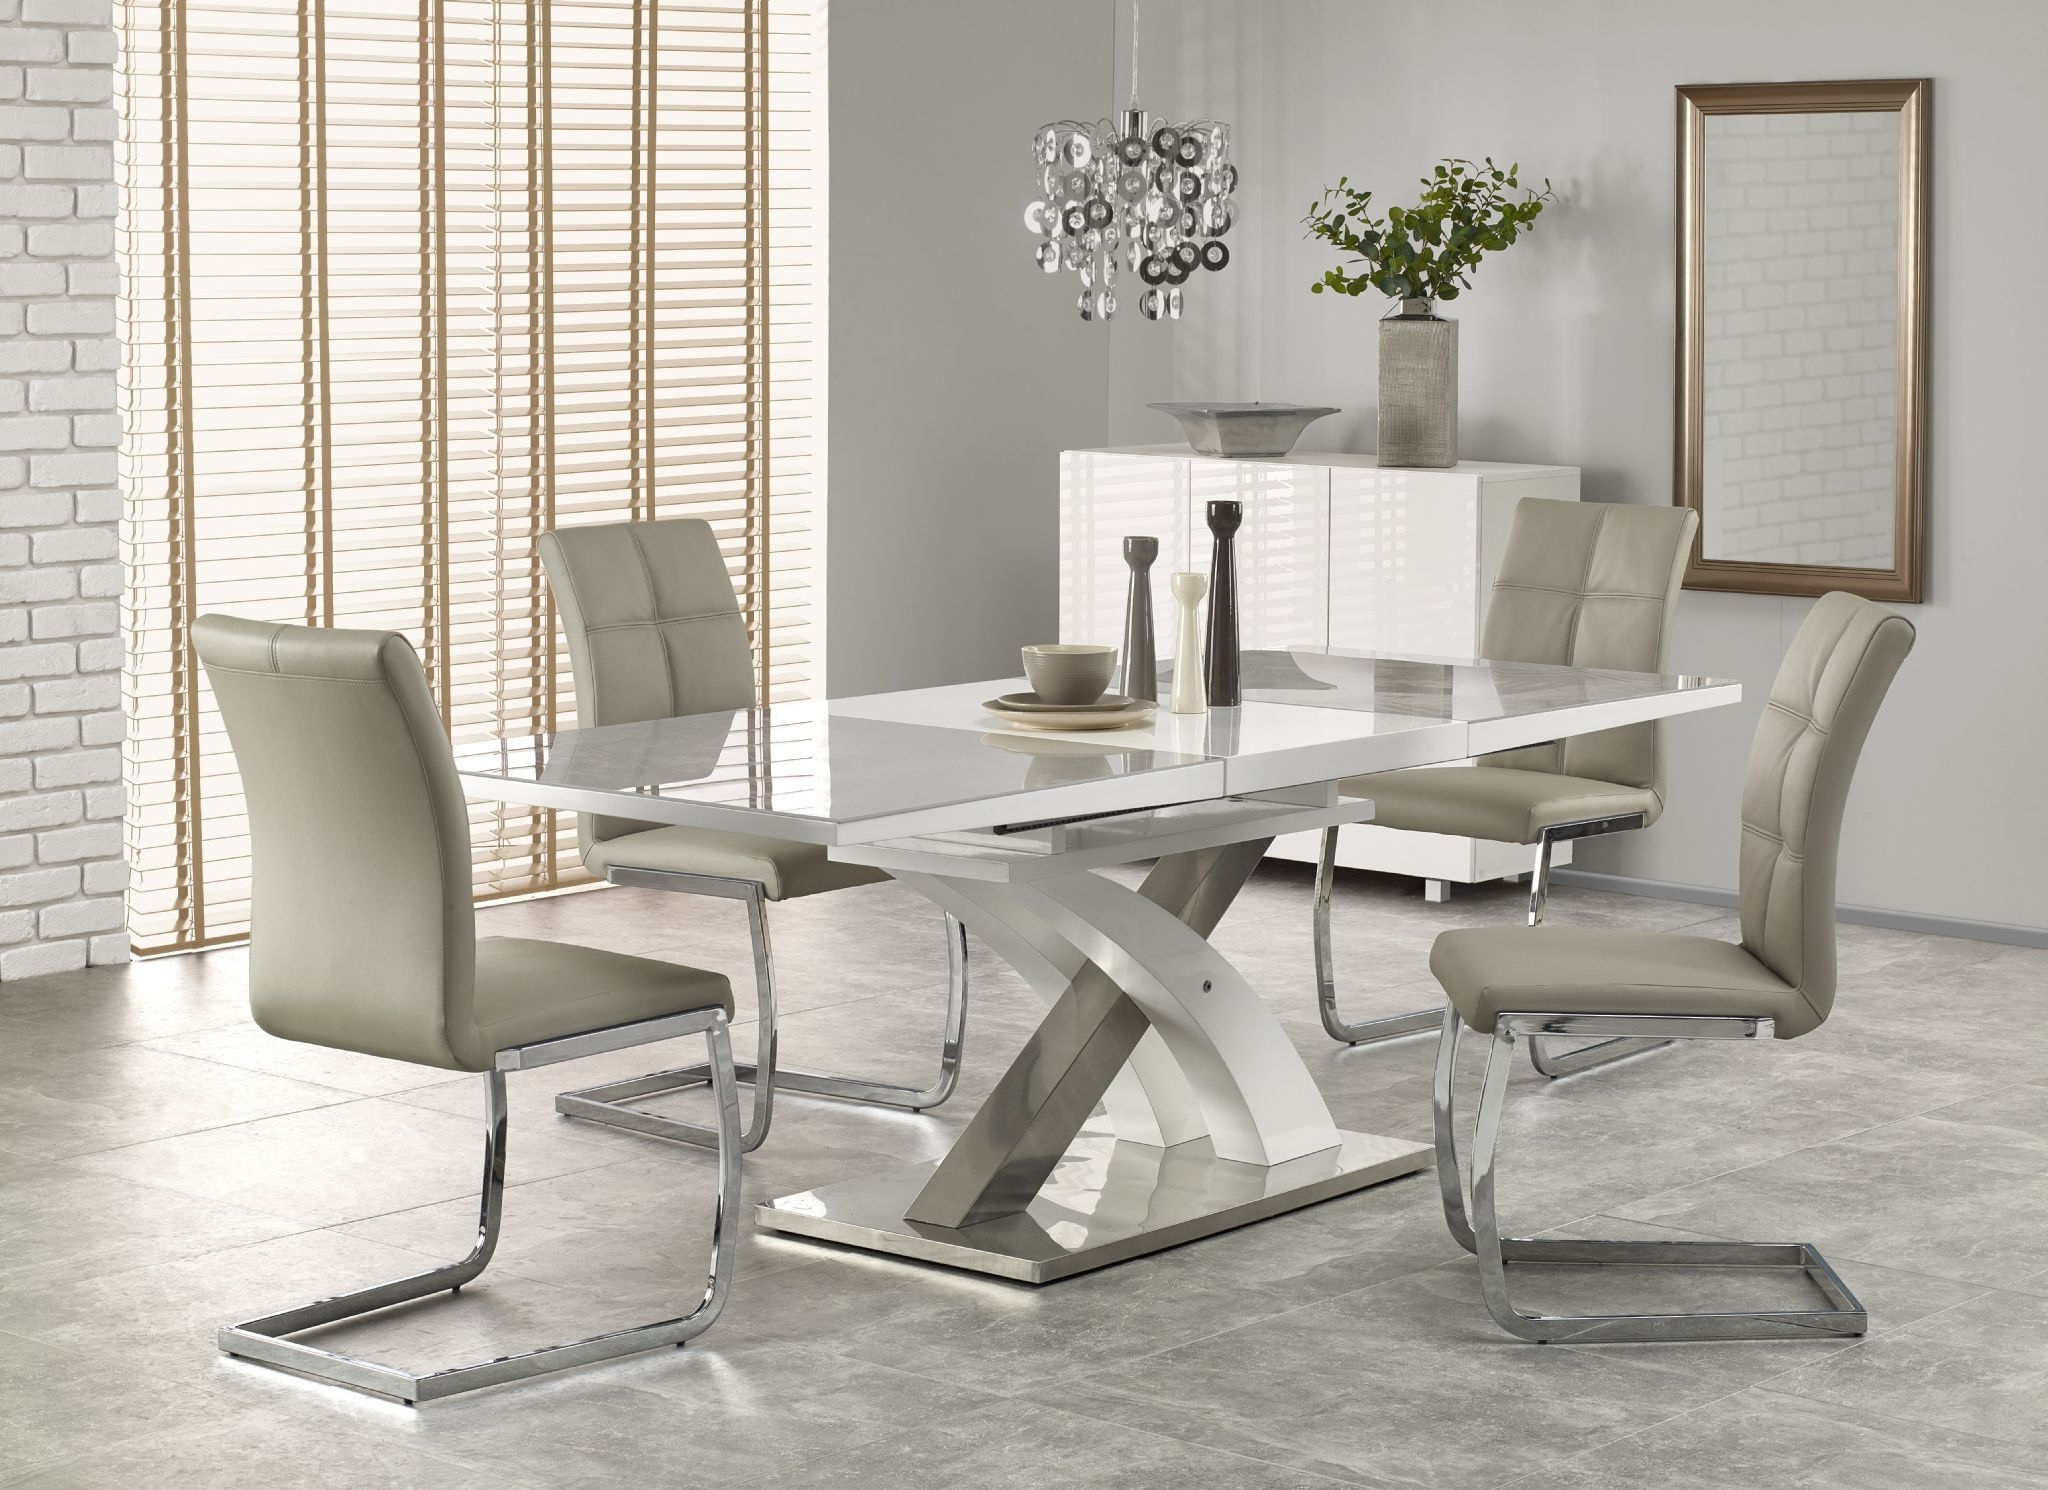 Best And Newest Grey Glass Dining Tables Regarding Harmony White High Gloss & Grey Glass Extendable Dining Table (Gallery 12 of 25)